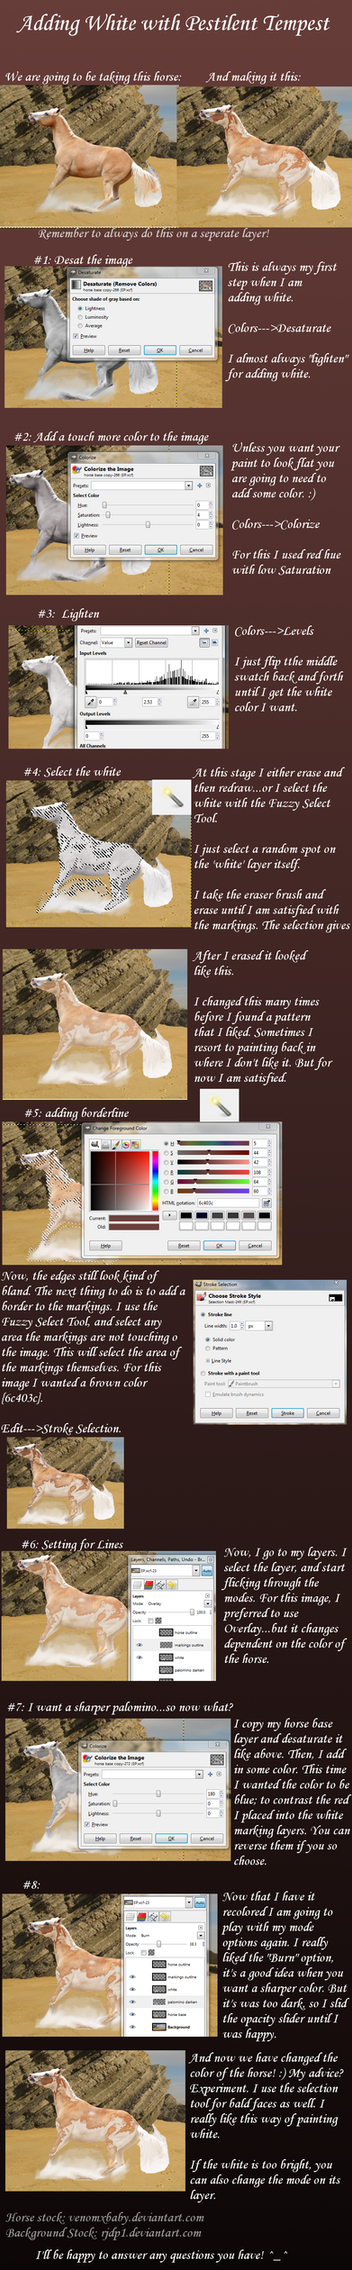 Adding white Tutorial by PestilentTempest